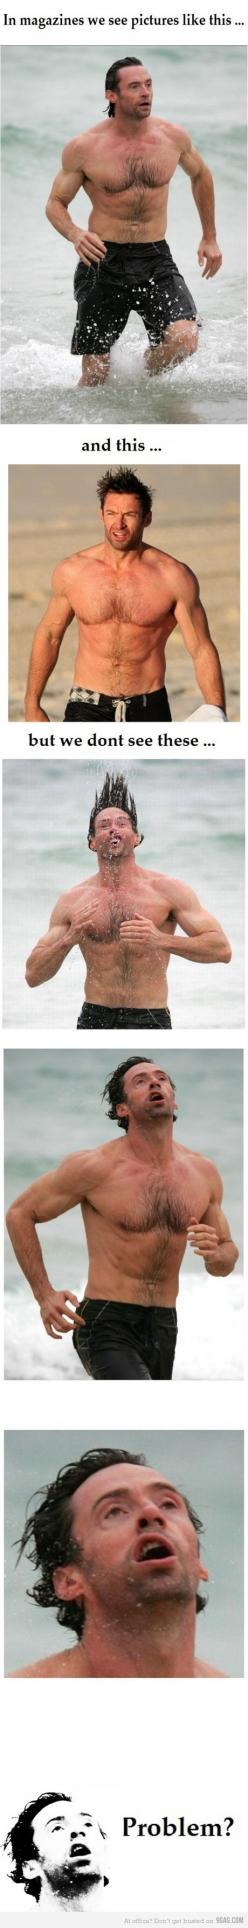 Still badass ( HAHAHAHAAH ): Picture, Giggle, Cant, So True, Funny Stuff, Funnies, Hugh Jackman, So Funny